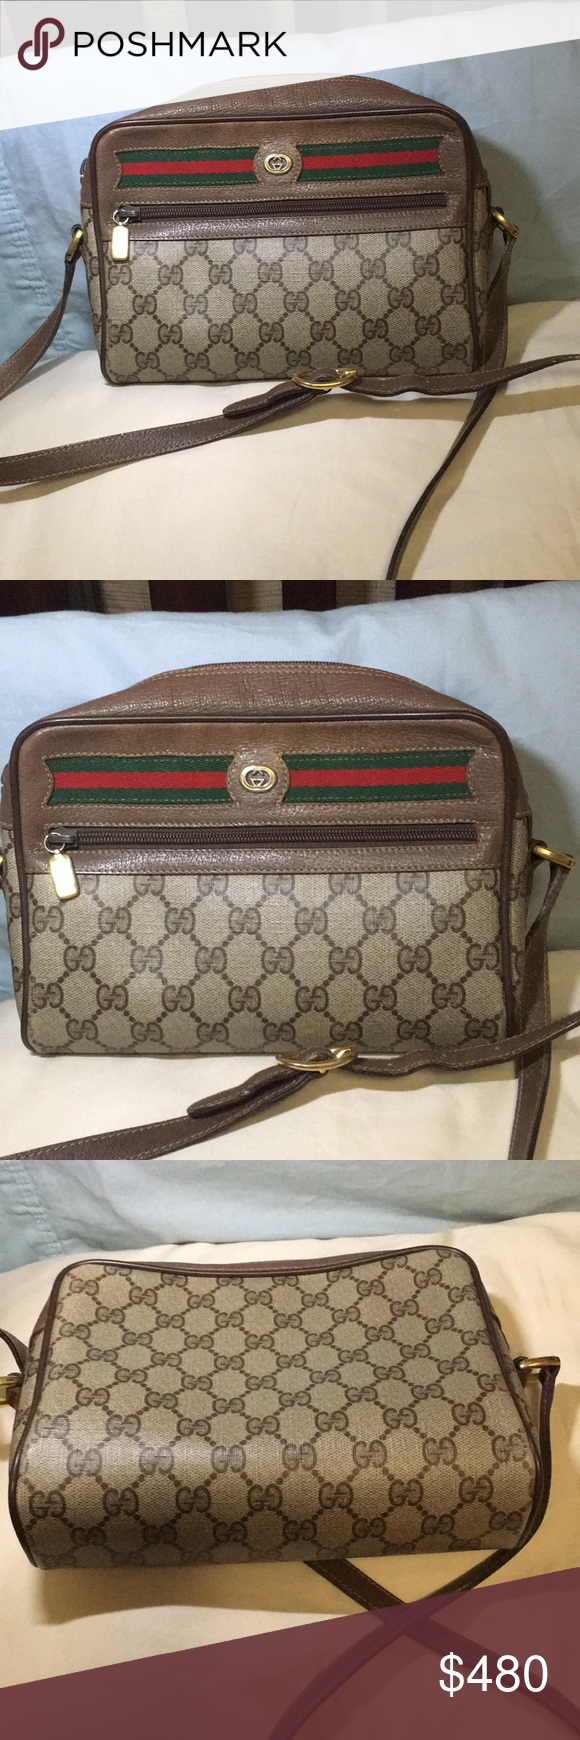 83dbc35bb518 Vintage GUCCI sling bag (AKA Ophidia line now) Timeless elegance at a  fraction of